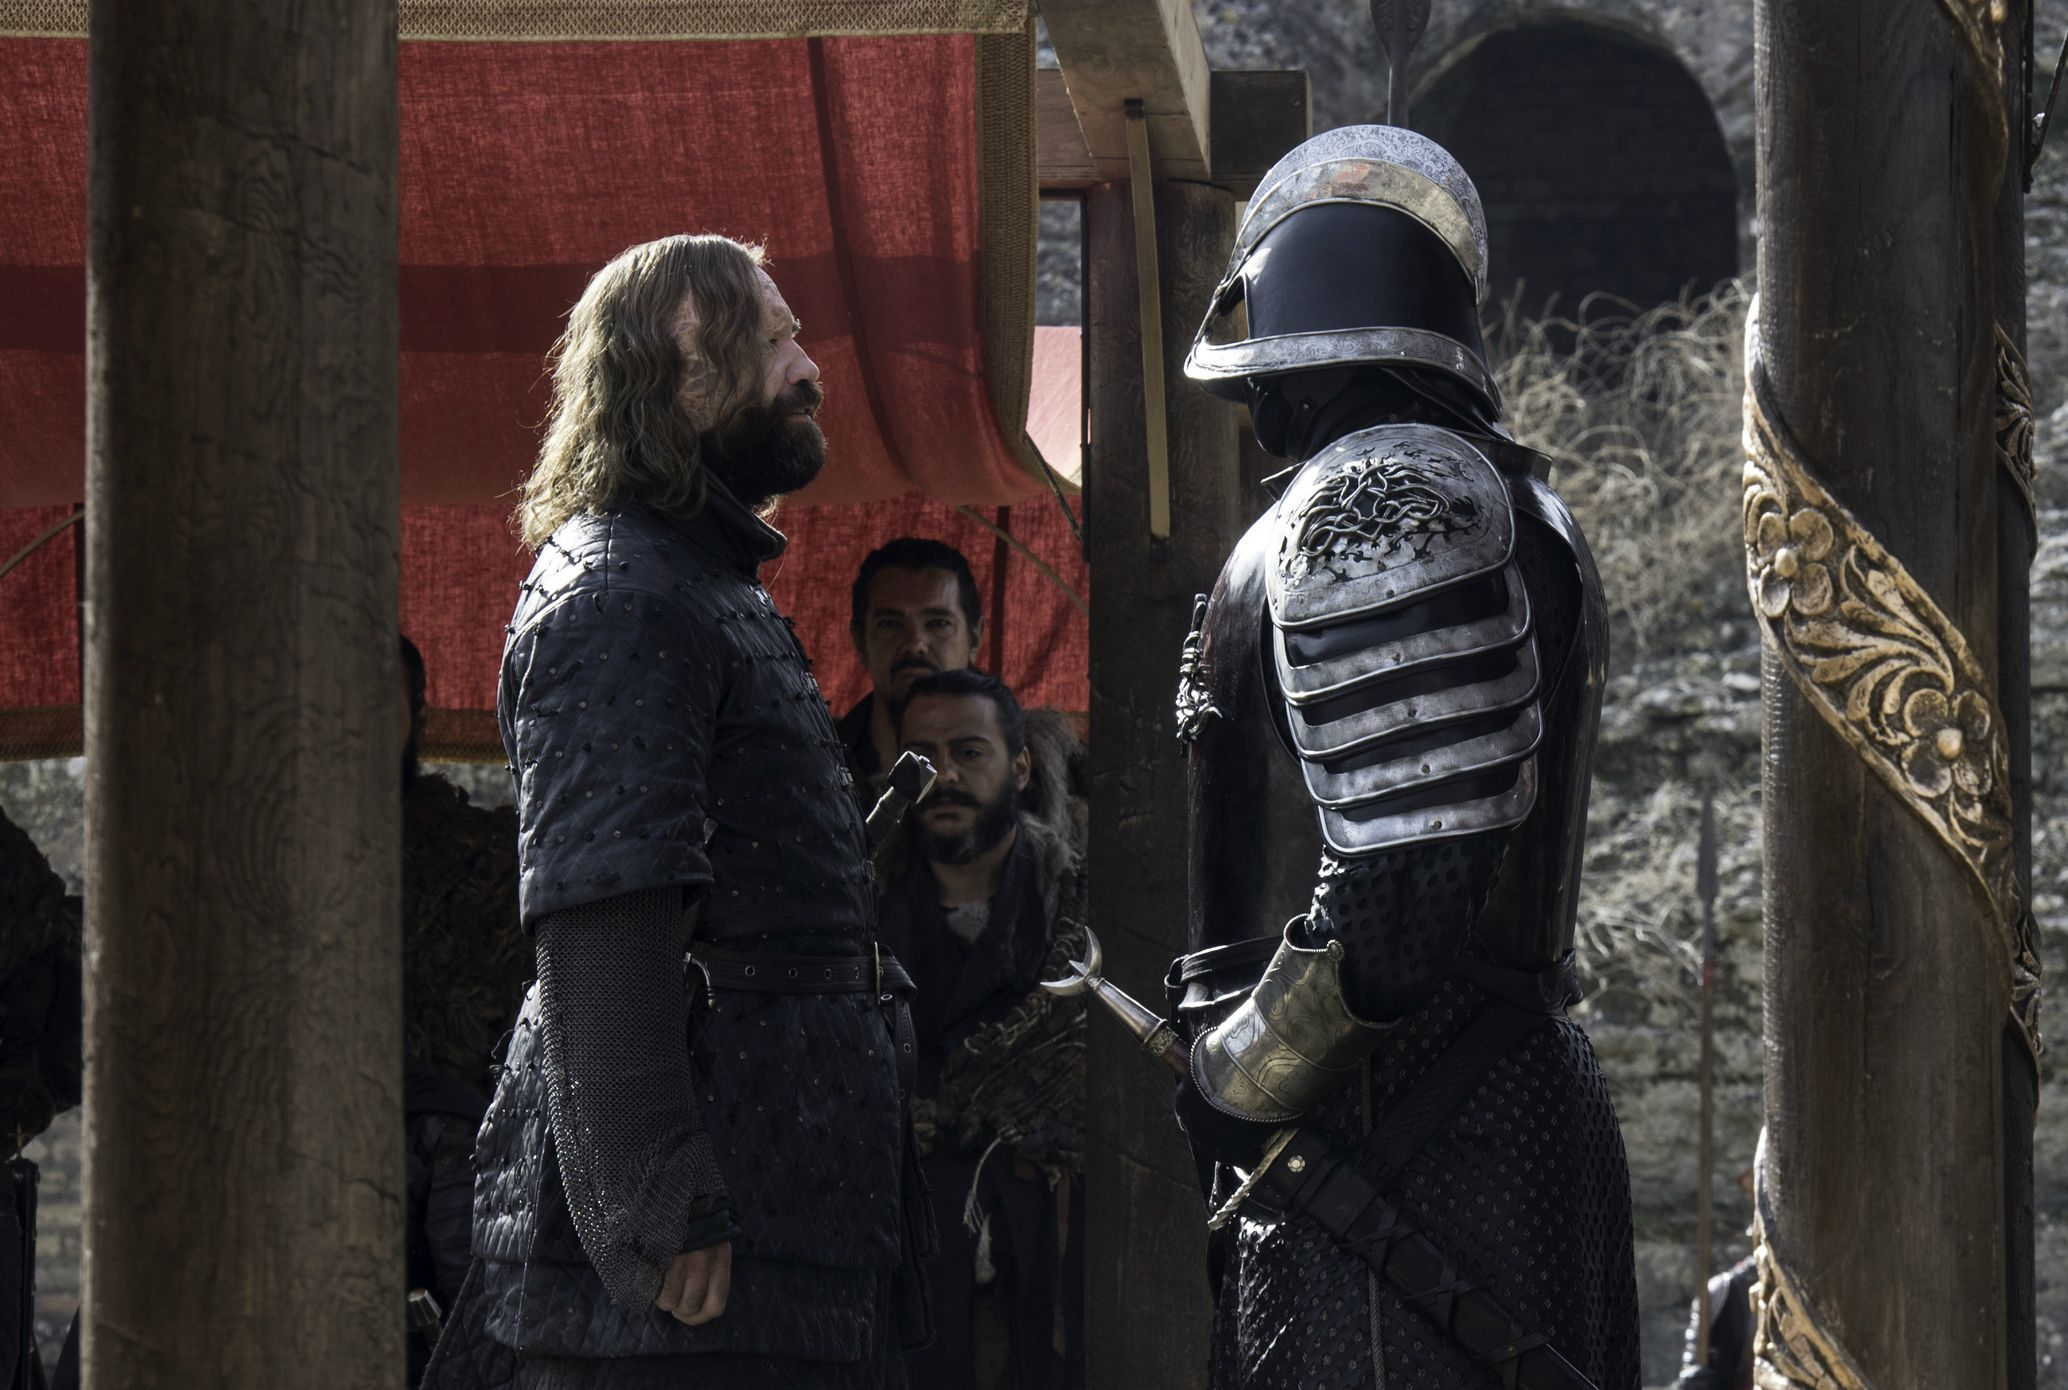 Cleganebowl? The Hound and Mountain face off